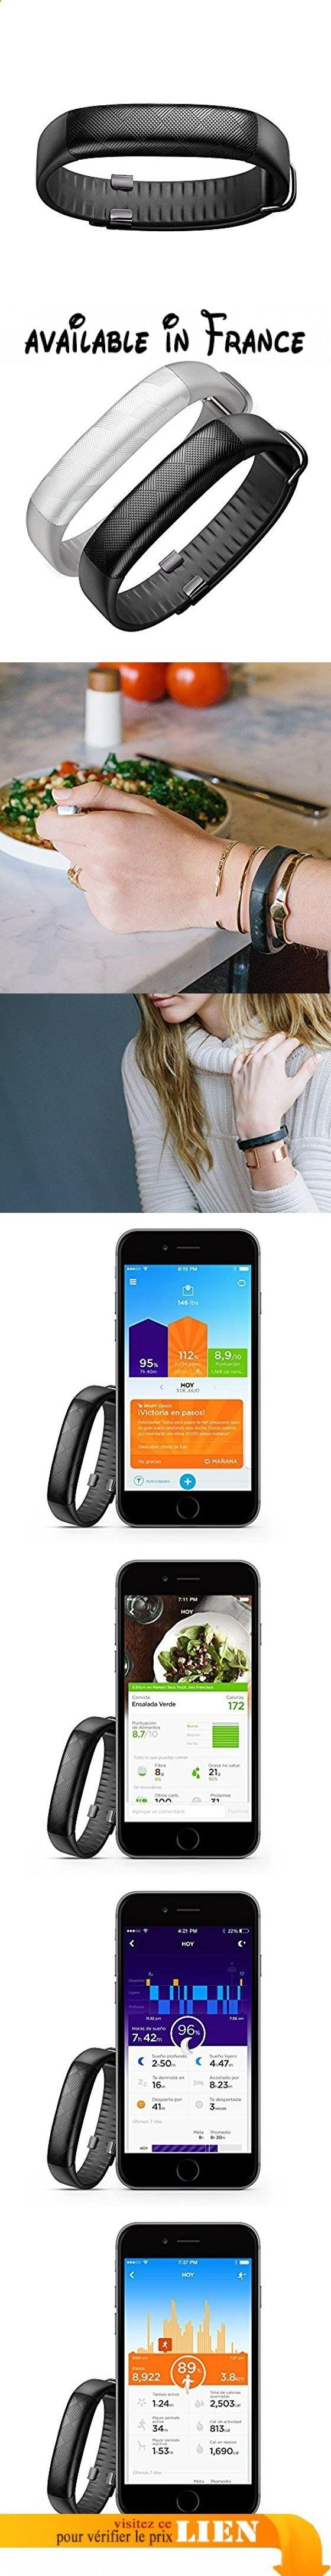 Activity Bracelets Fitness - Activity Bracelets Fitness - Jawbone UP2 Wellness Fitness Bracelet Activity Tracker and Sleep Black Diamond. Jawbone. JL03-0303AGD-EU2 #Sports #PHONE_ACCESSORY - The benefits of wearing these smart bracelets are not only in your comfort, but also in that they are able to control all your physical progress - The benefits of wearing these smart bracelets are not only in your comfort, but also in that they are able to control all your physical progress